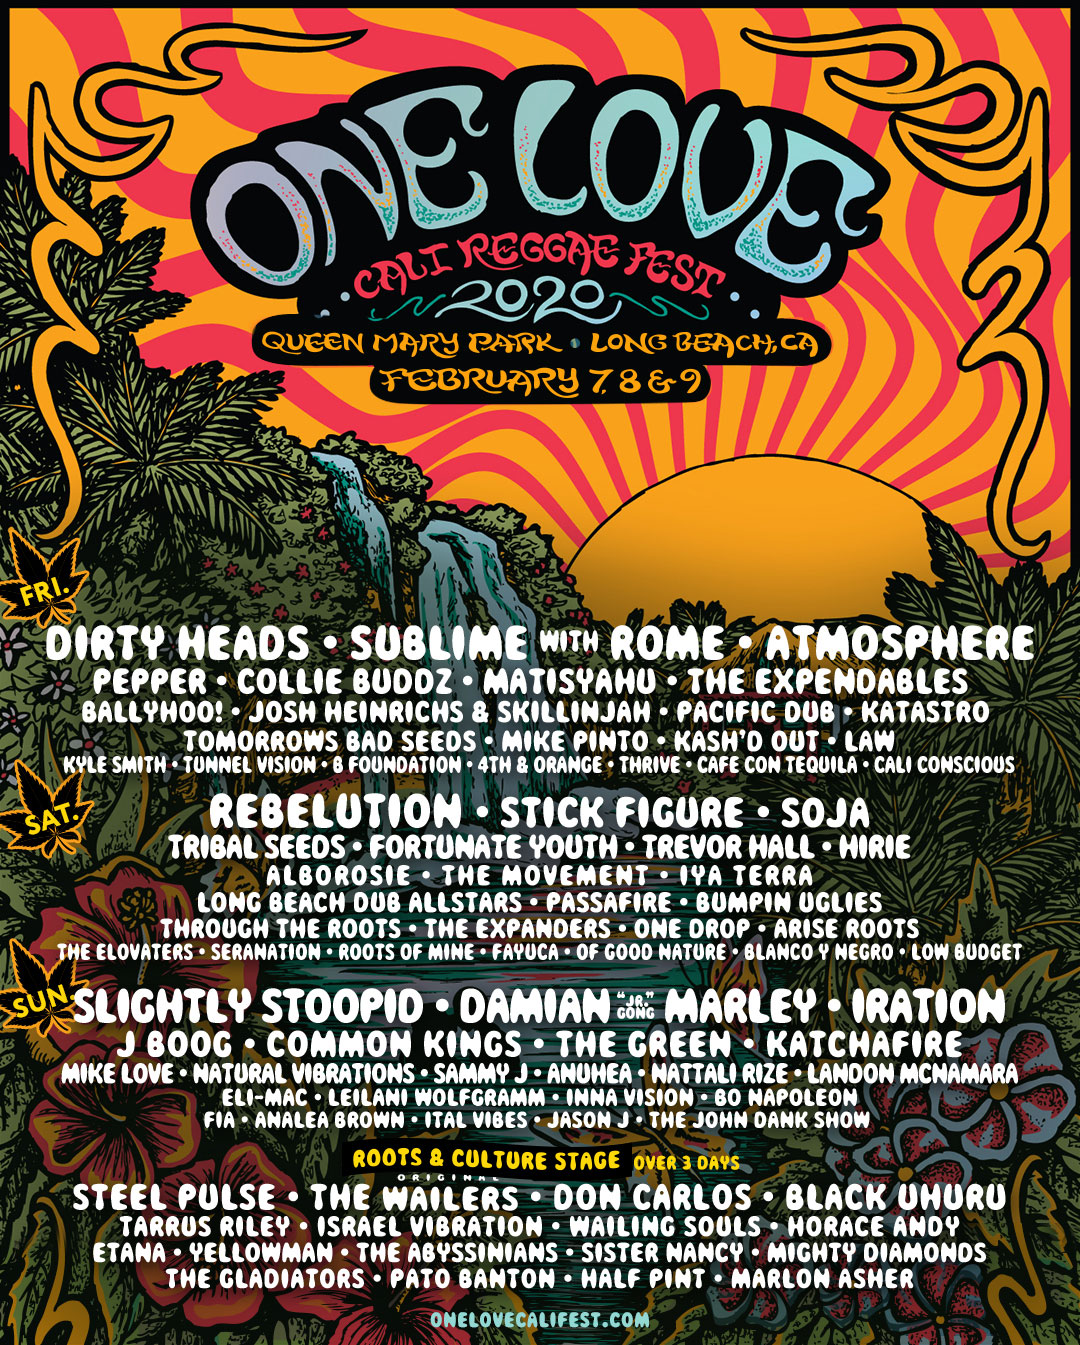 Don't Miss The One Love Cali Reggae Fest - February 7-9!